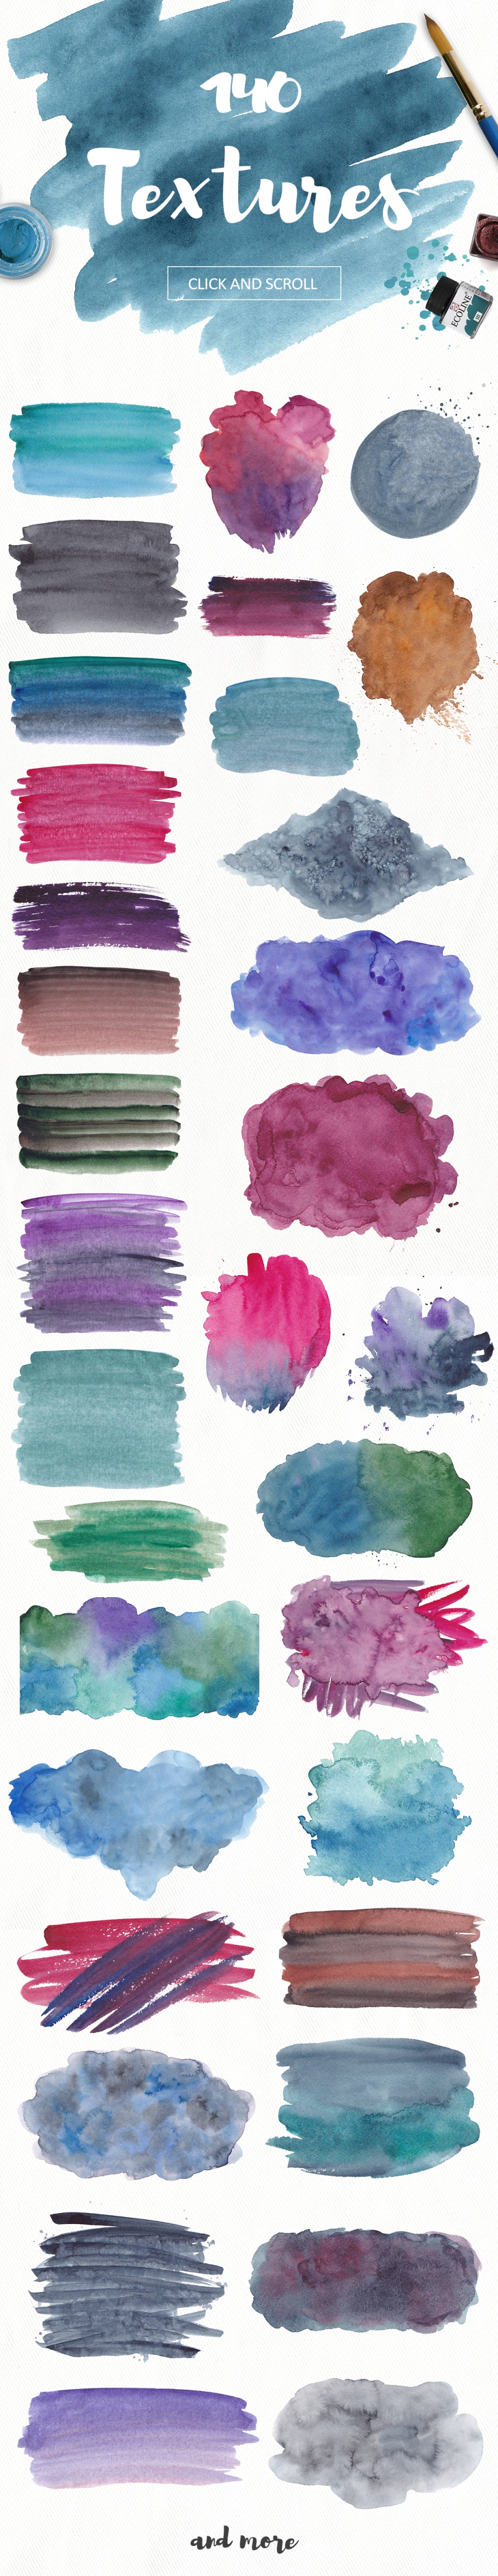 200 watercolor textures and backgrounds. Superbundle! example image 6